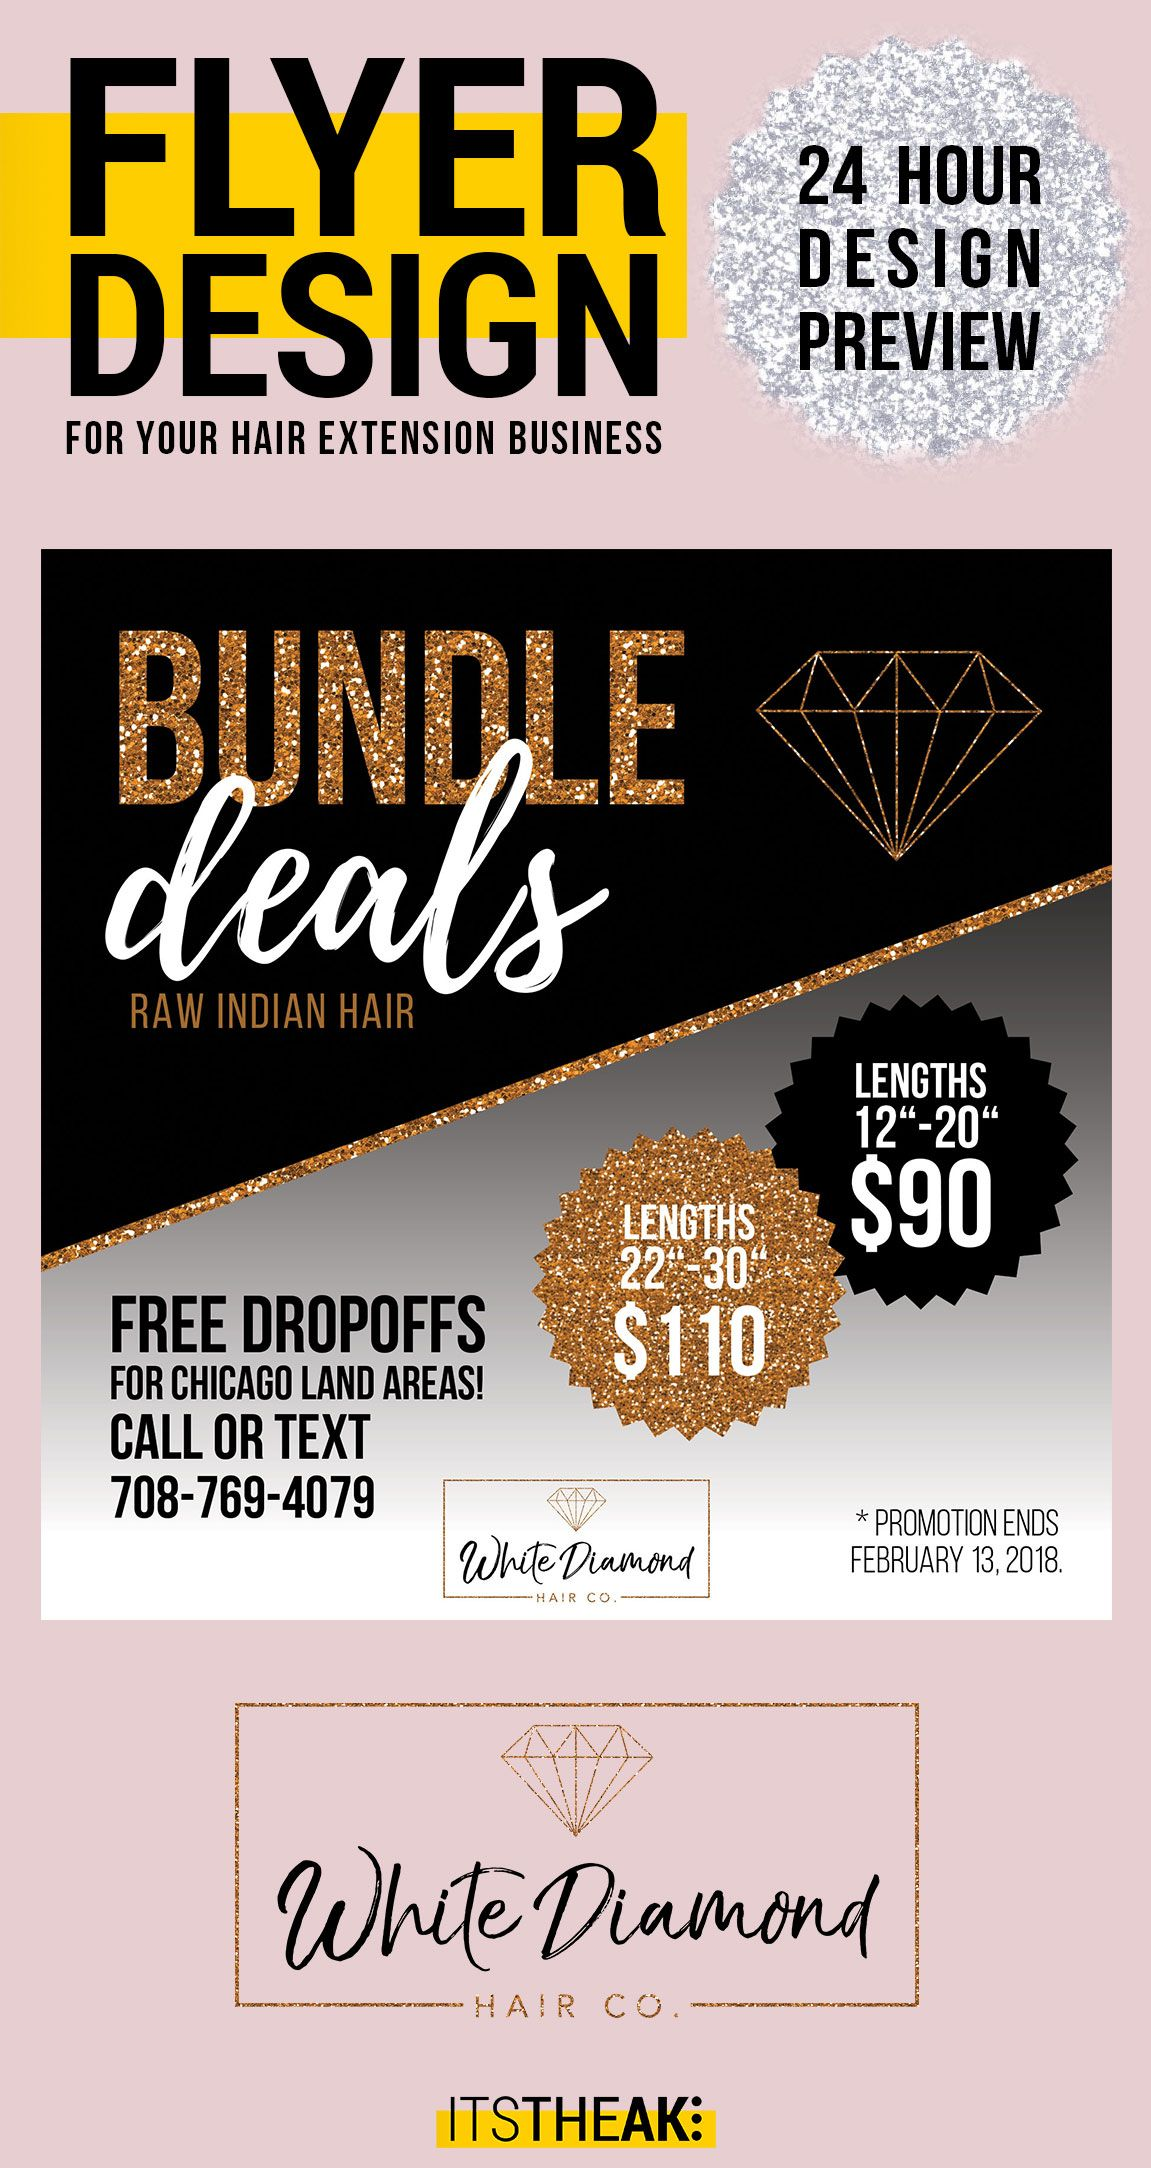 premade pricing flyer customized just for you hair extensions